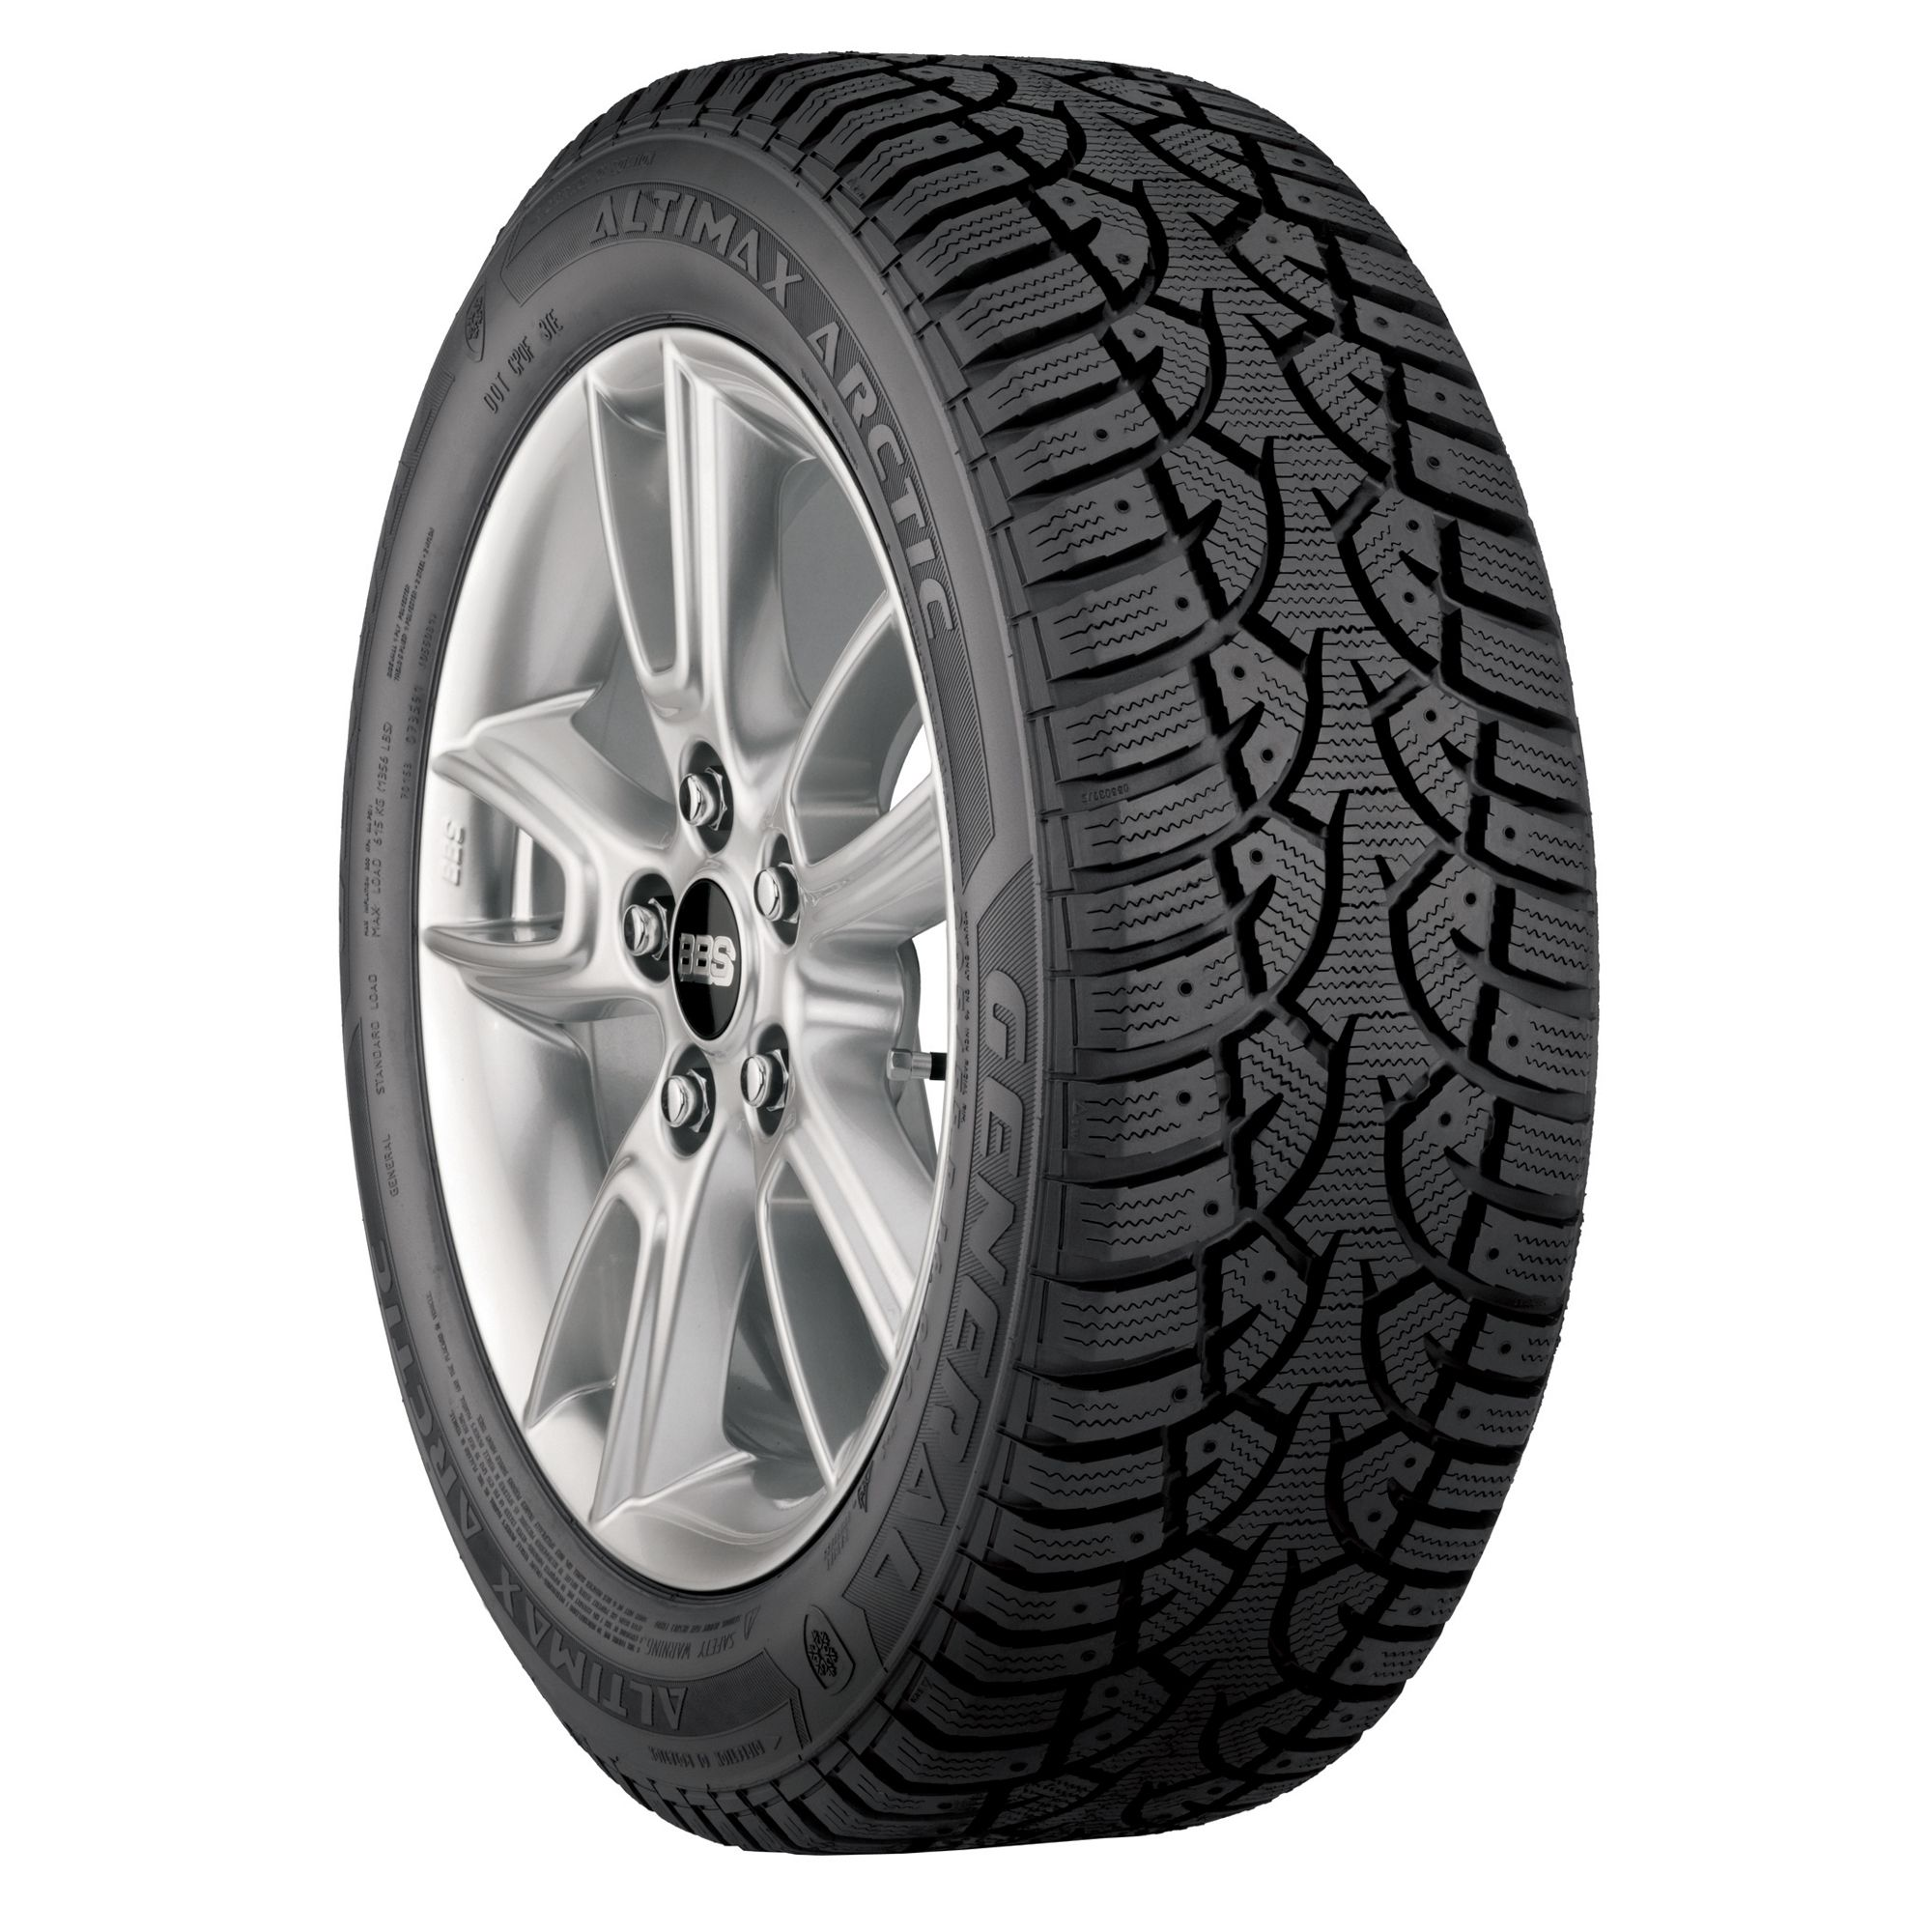 General Tire Altimax Arctic - 265/70R17 115Q BSW - Winter Tire 265-70-17